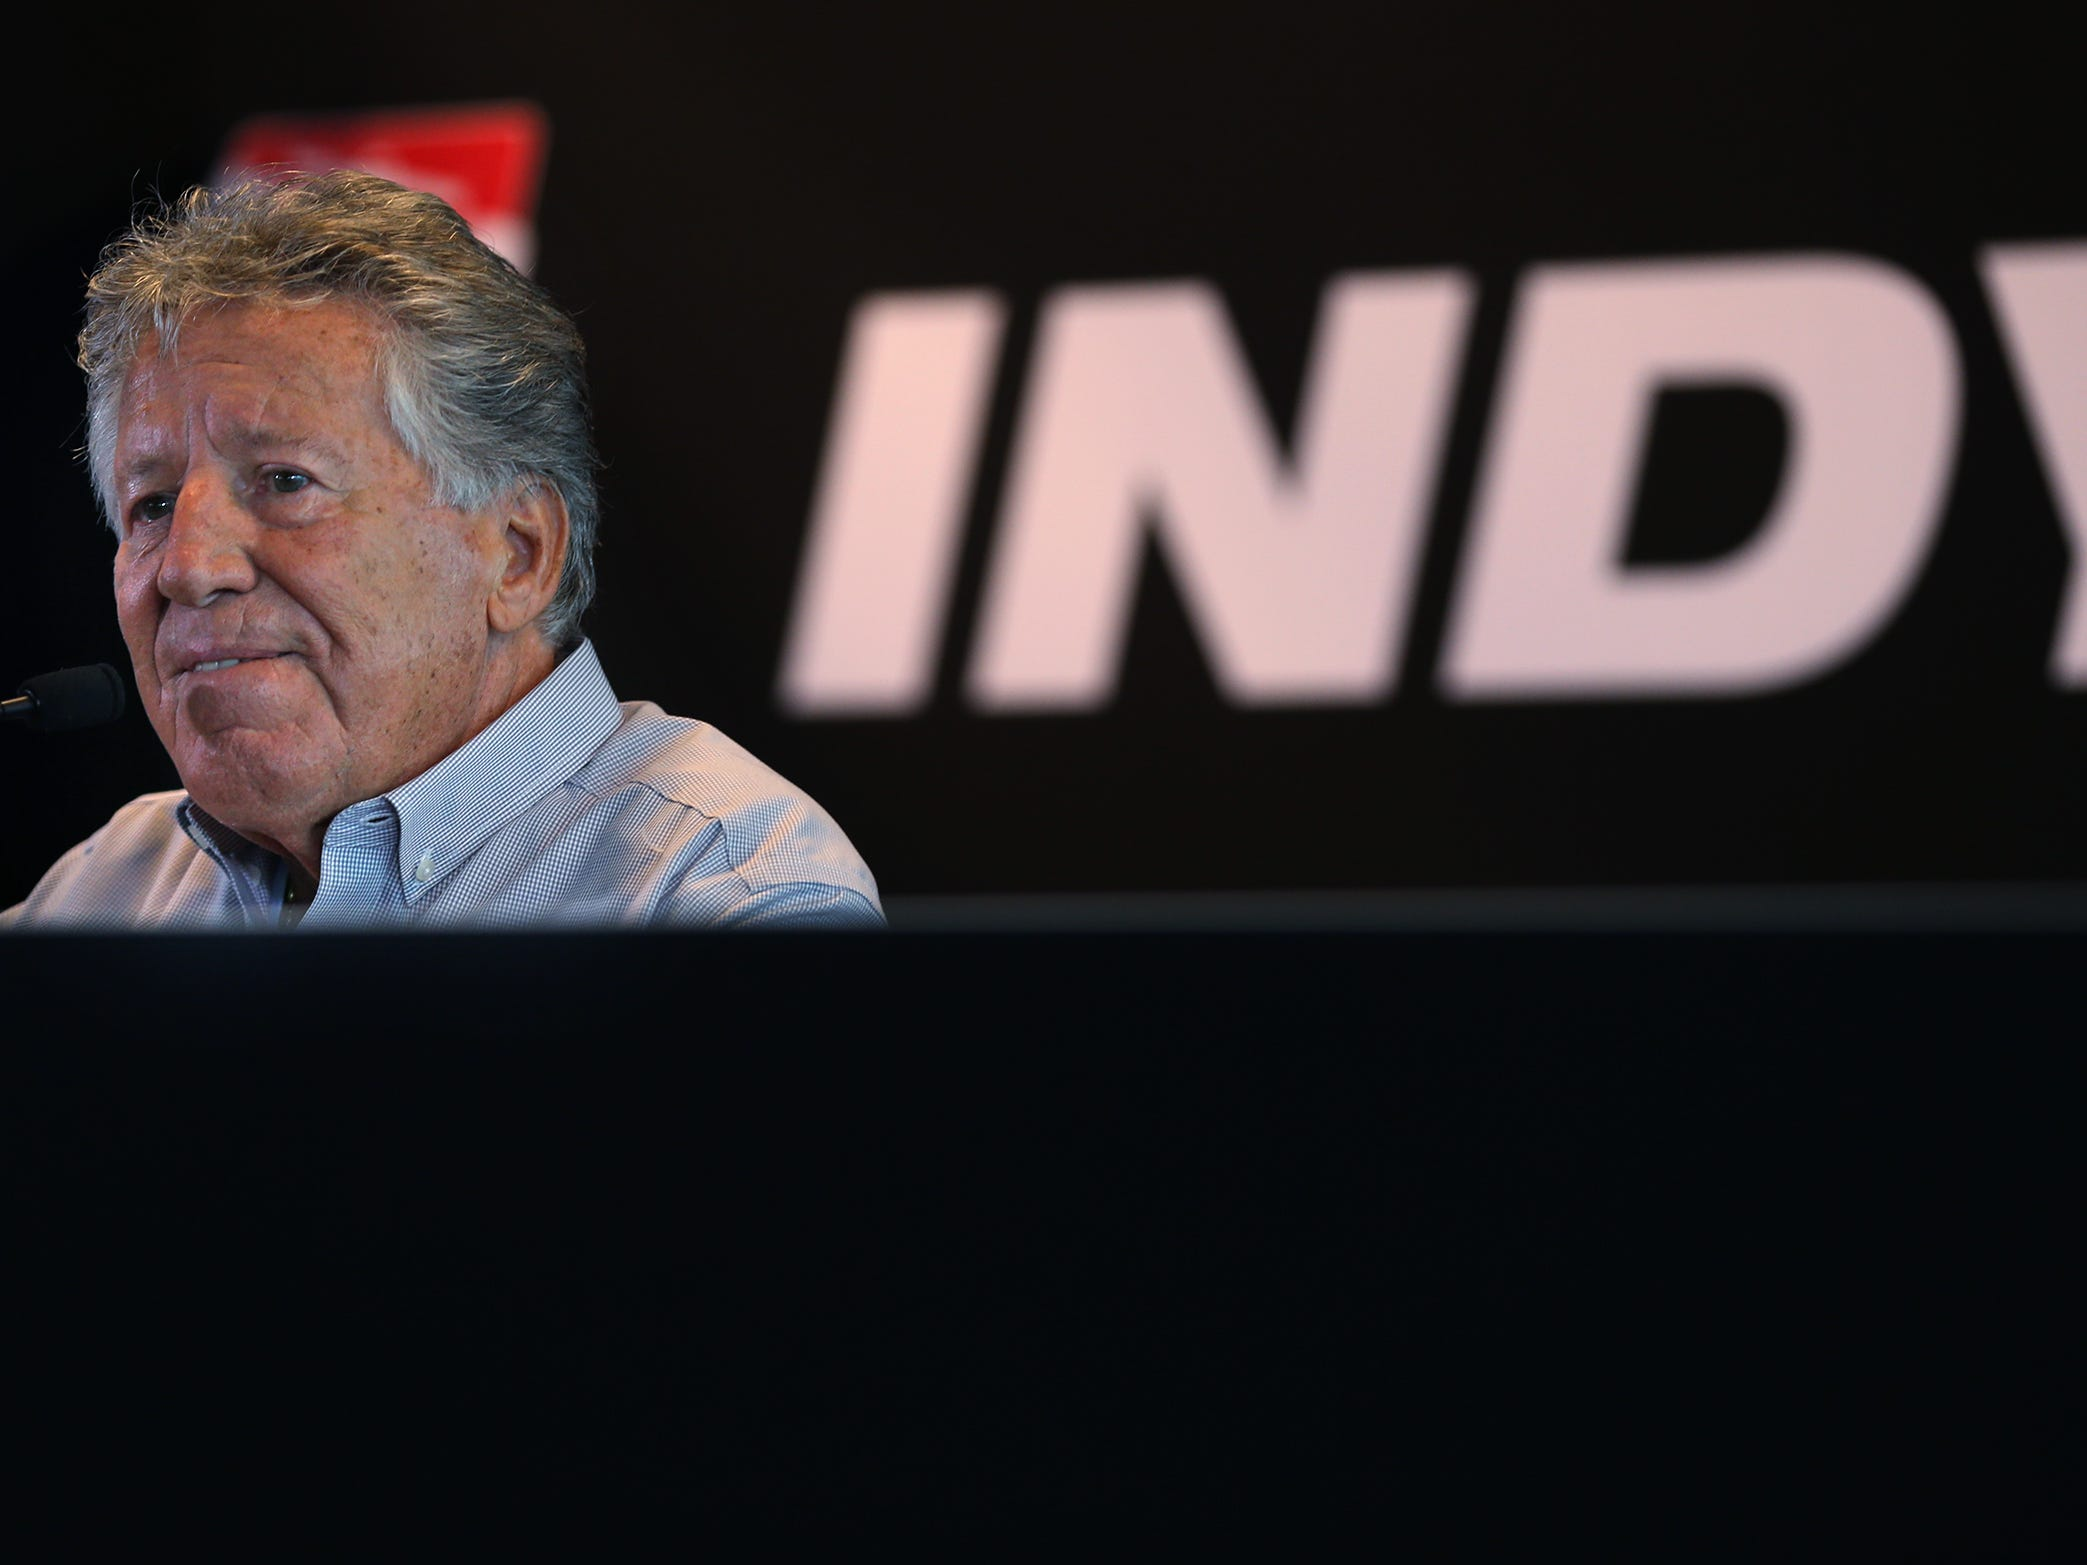 Indy 500 champion takes questions during a press conference on the 50th anniversary of Mario Andretti's winning of the Indy 500, at Indianapolis Motor Speedway, Wednesday, Jan. 9, 2019.